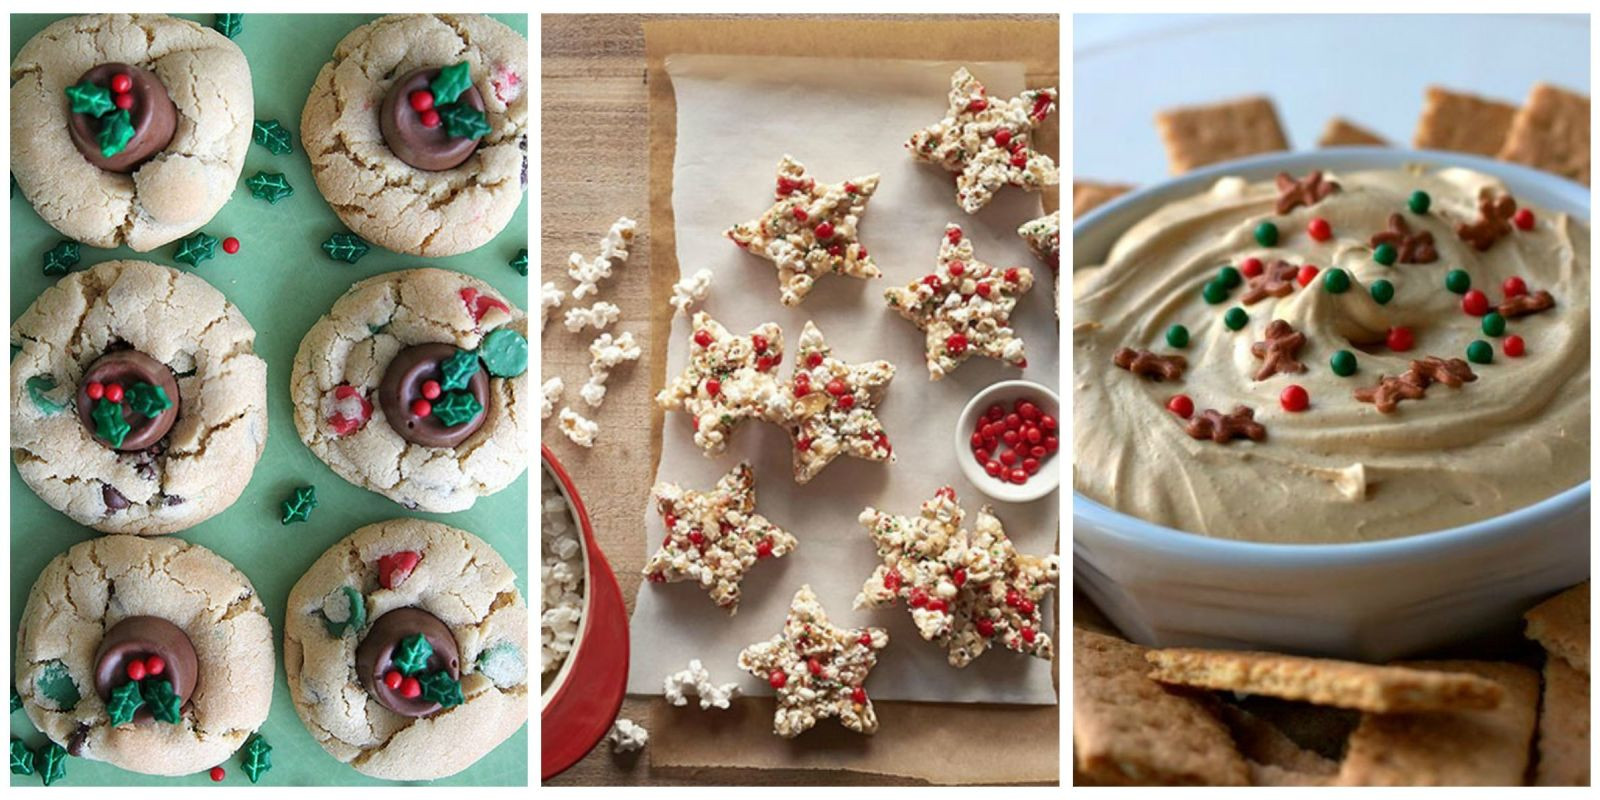 Christmas Baking Ideas  40 Easy Christmas Desserts Best Recipes and Ideas for